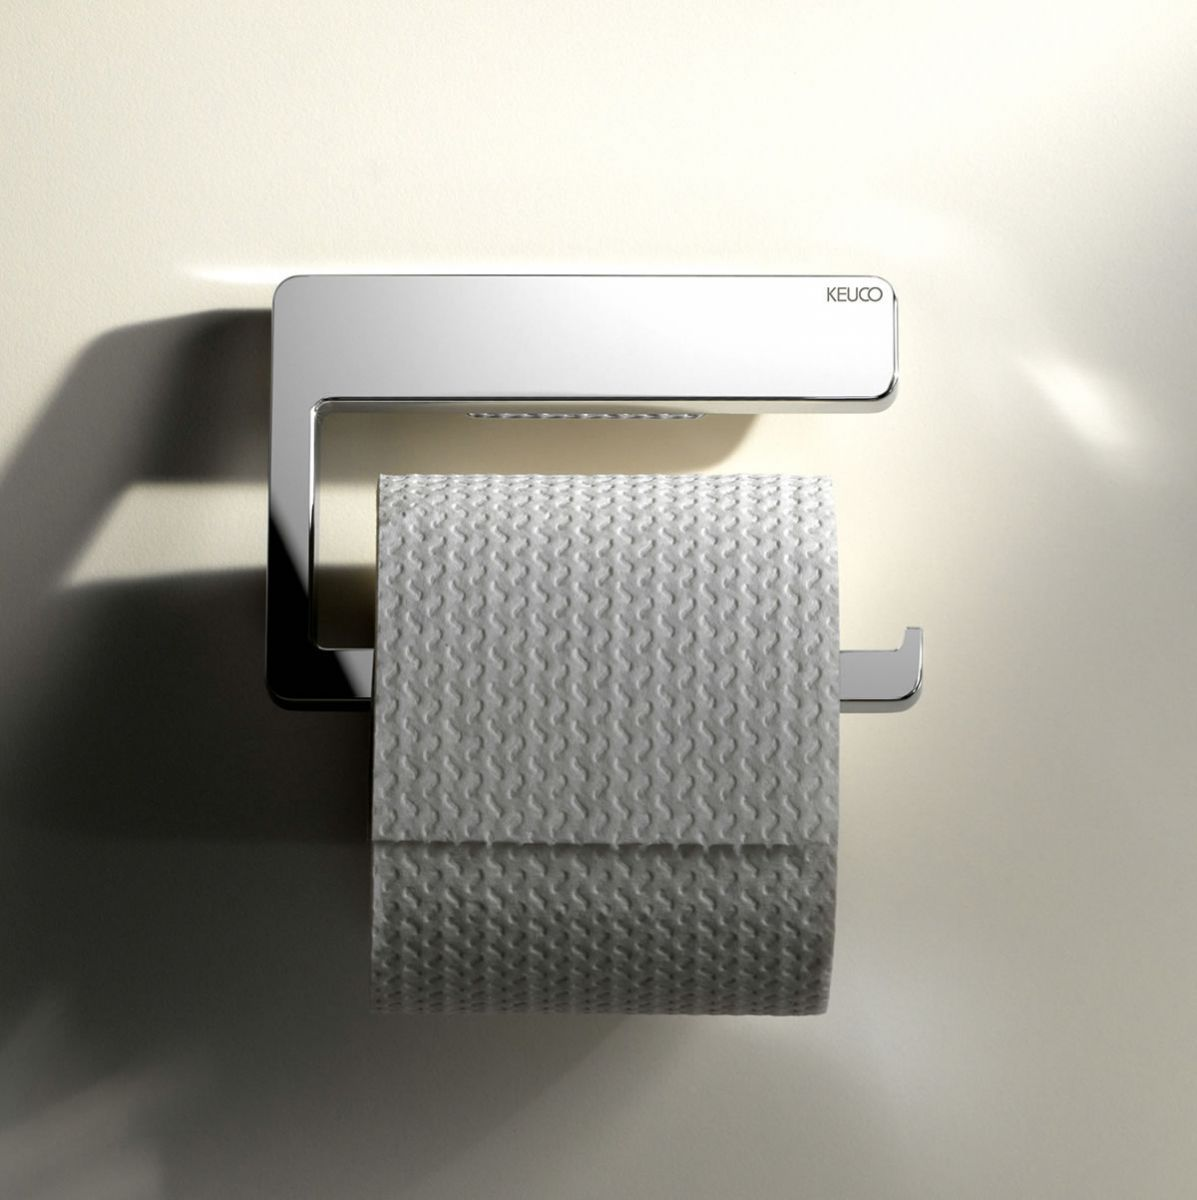 Keuco moll toilet roll holder uk bathrooms for Toilet accessories